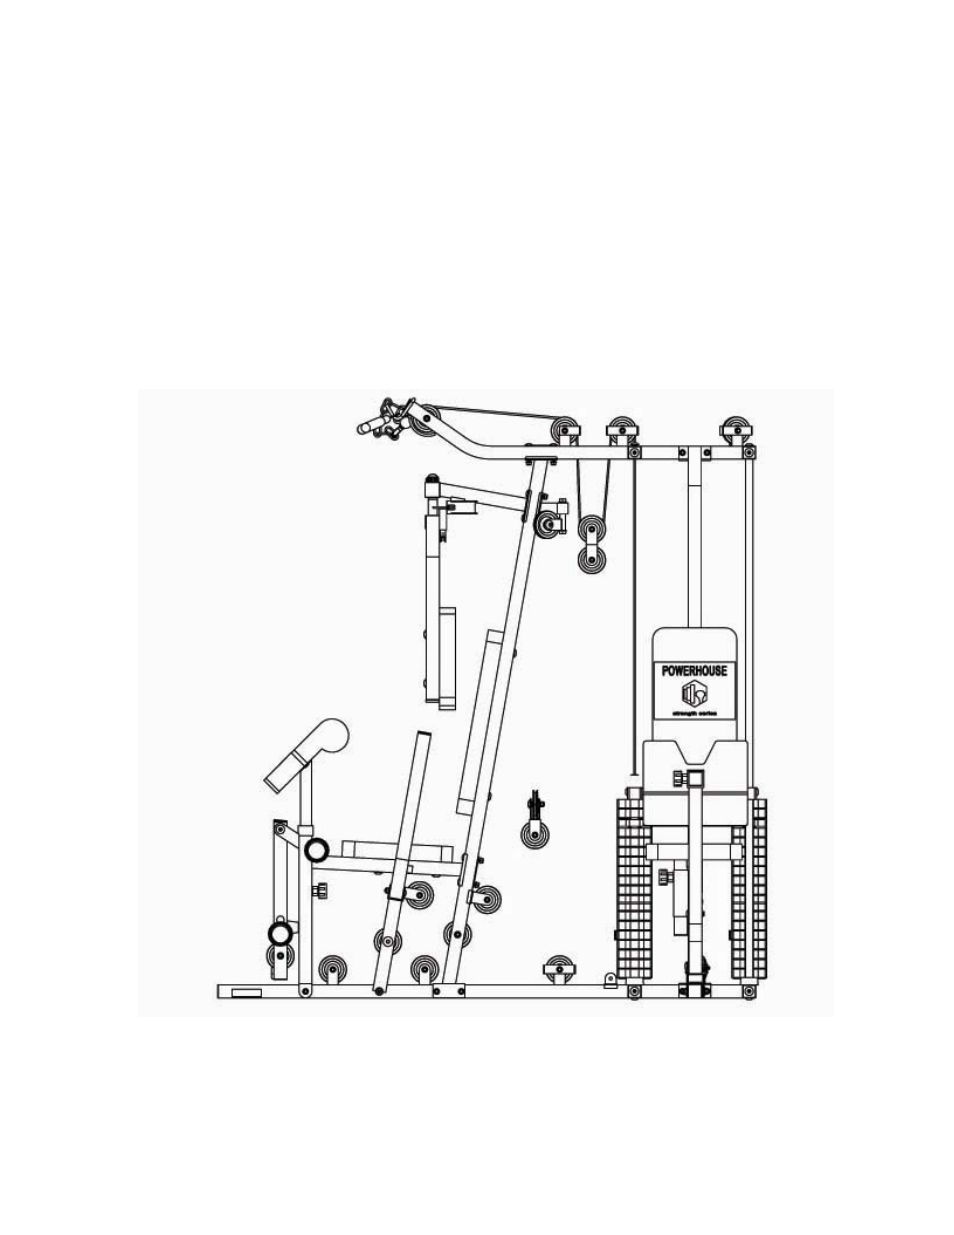 Upper cable loop diagram | Impex GS-9 User Manual | Page 14 / 31